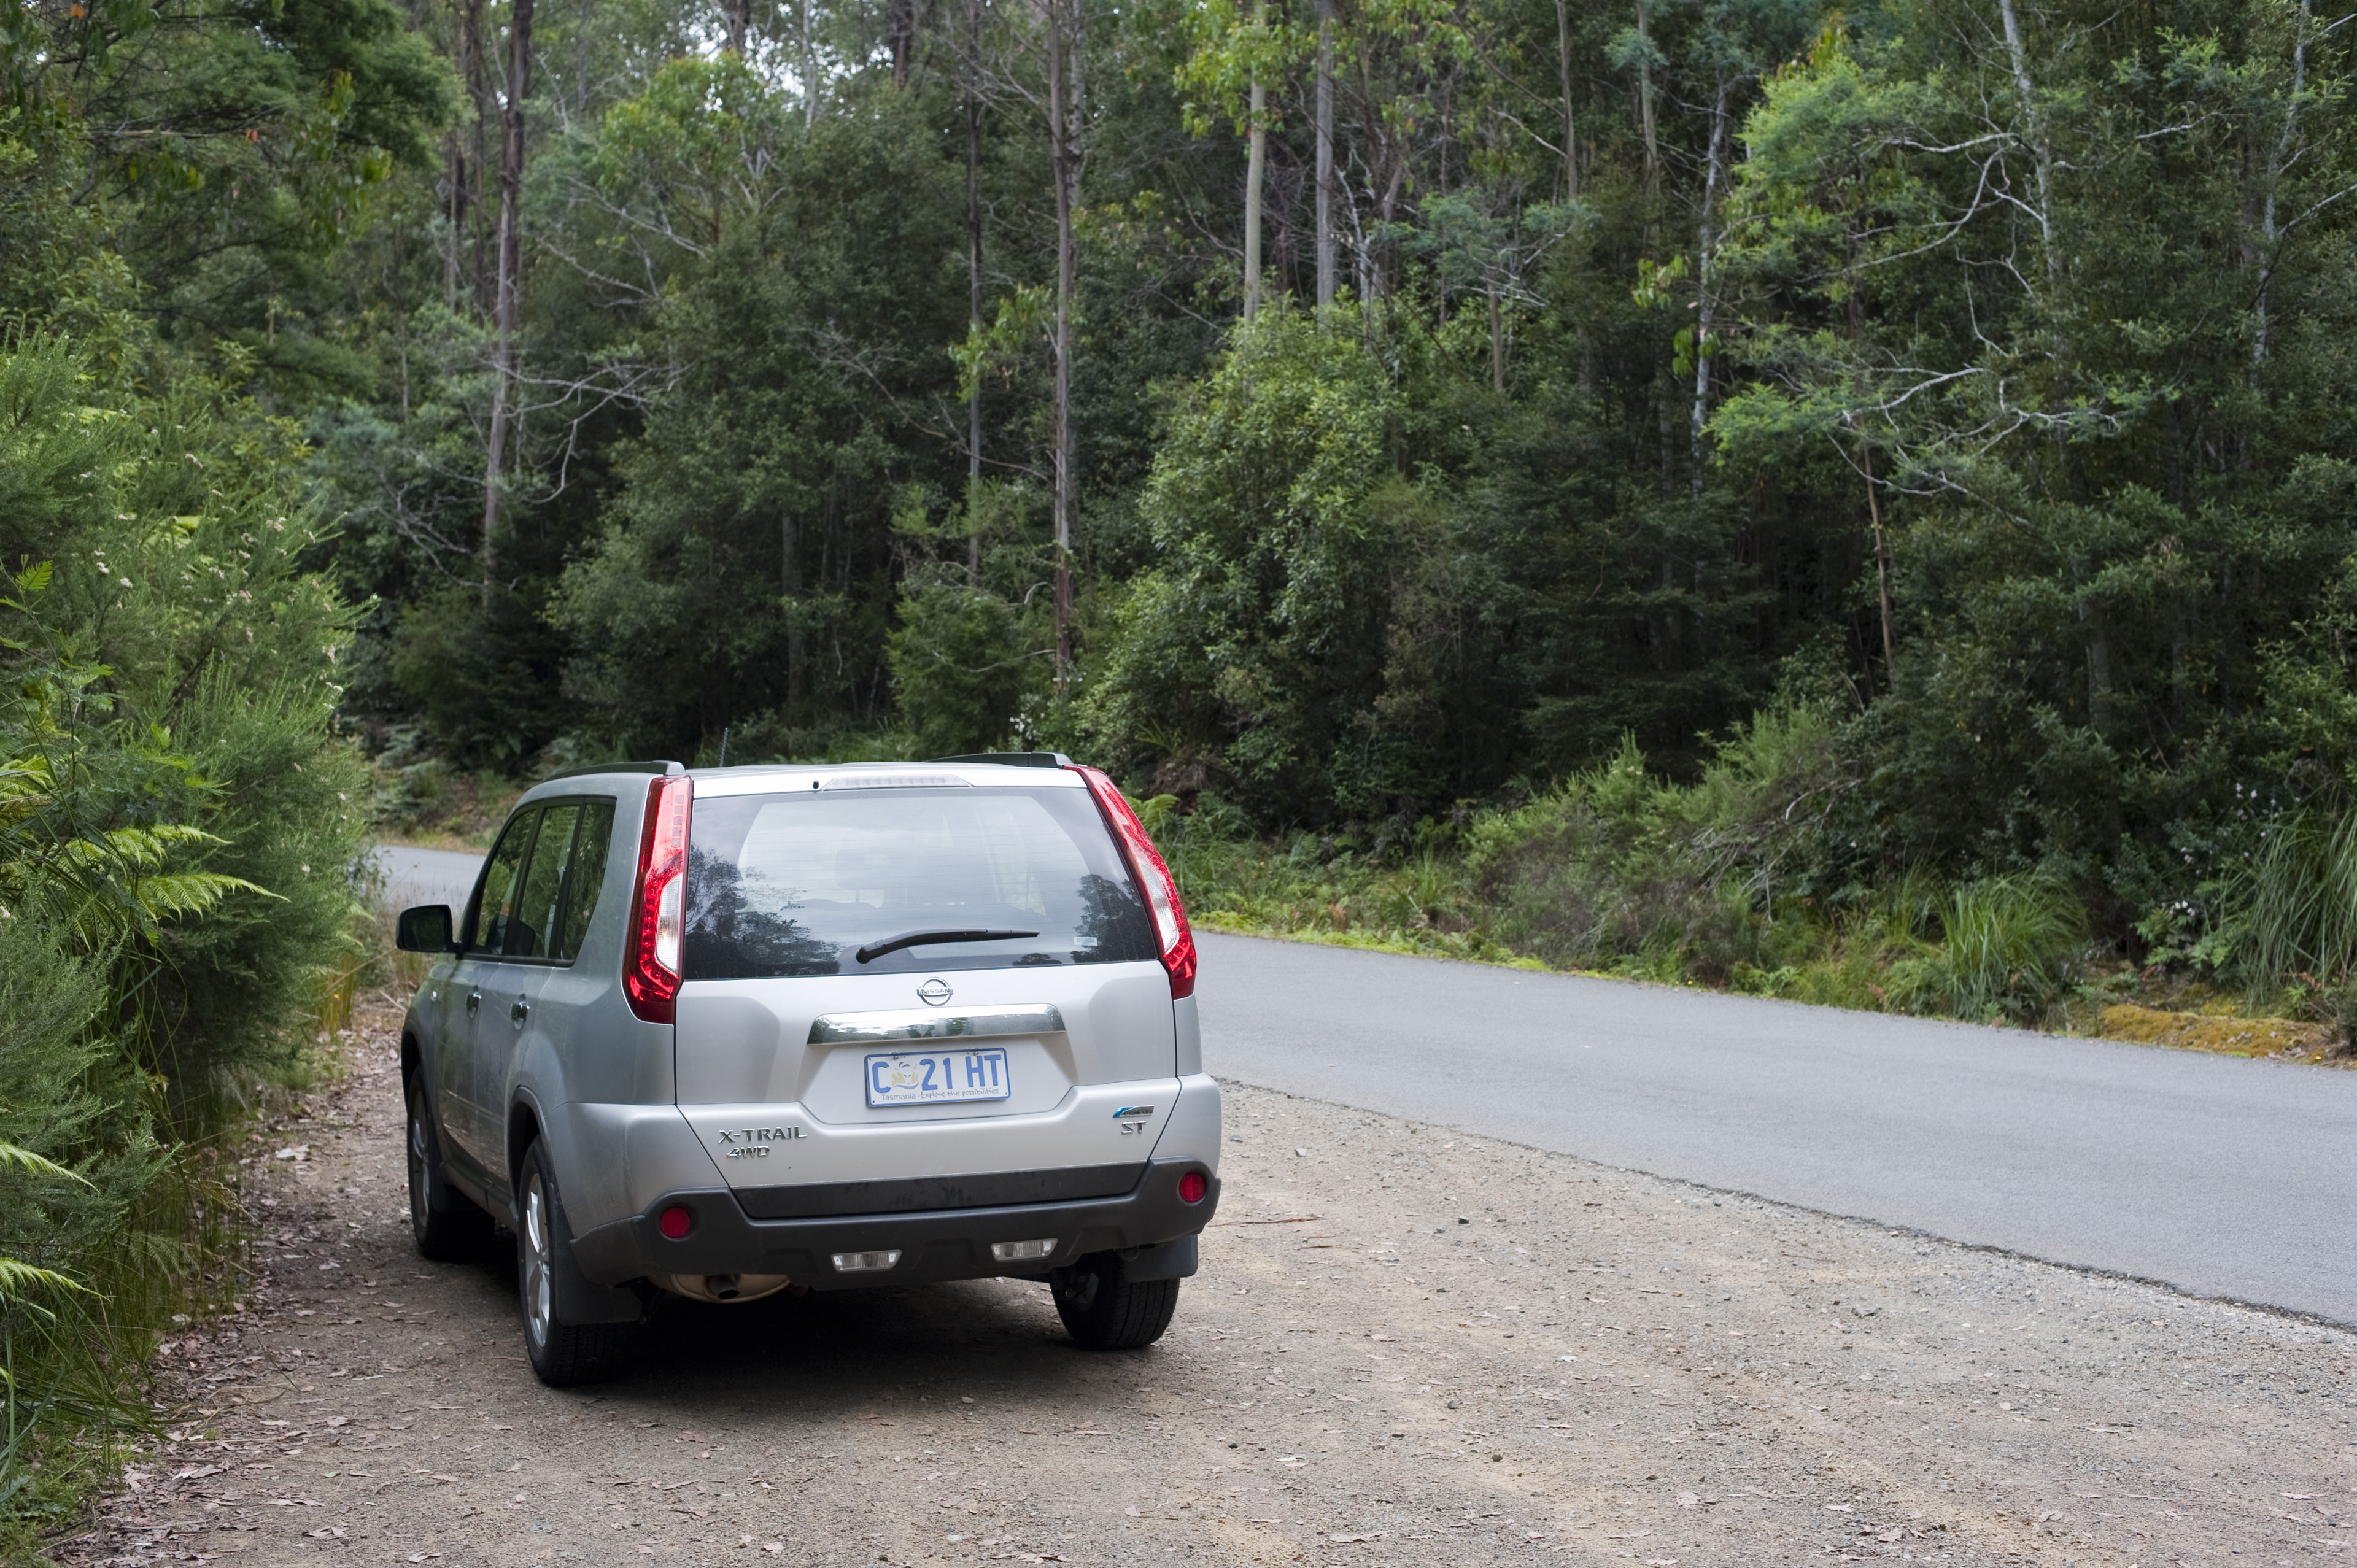 Hatchback car parked on the gravel at the side of the road in a wooded area of lush green trees, back view